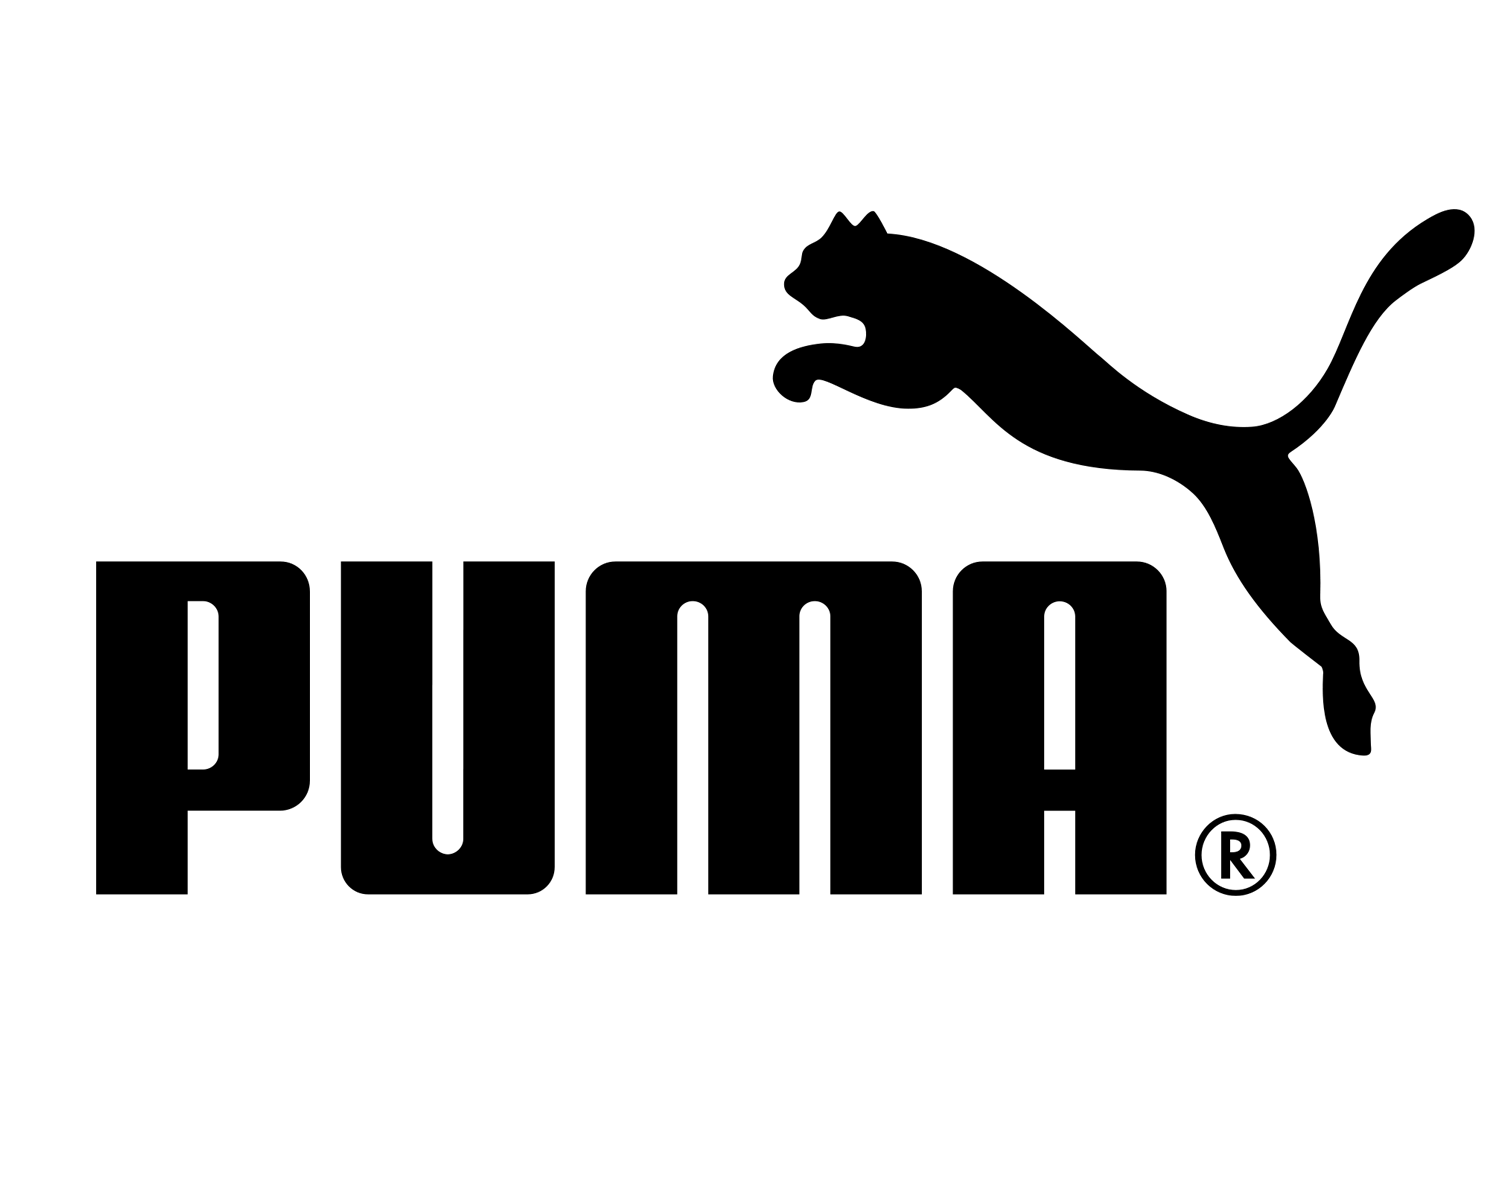 Puma-logo-PNG-Transparent-Background